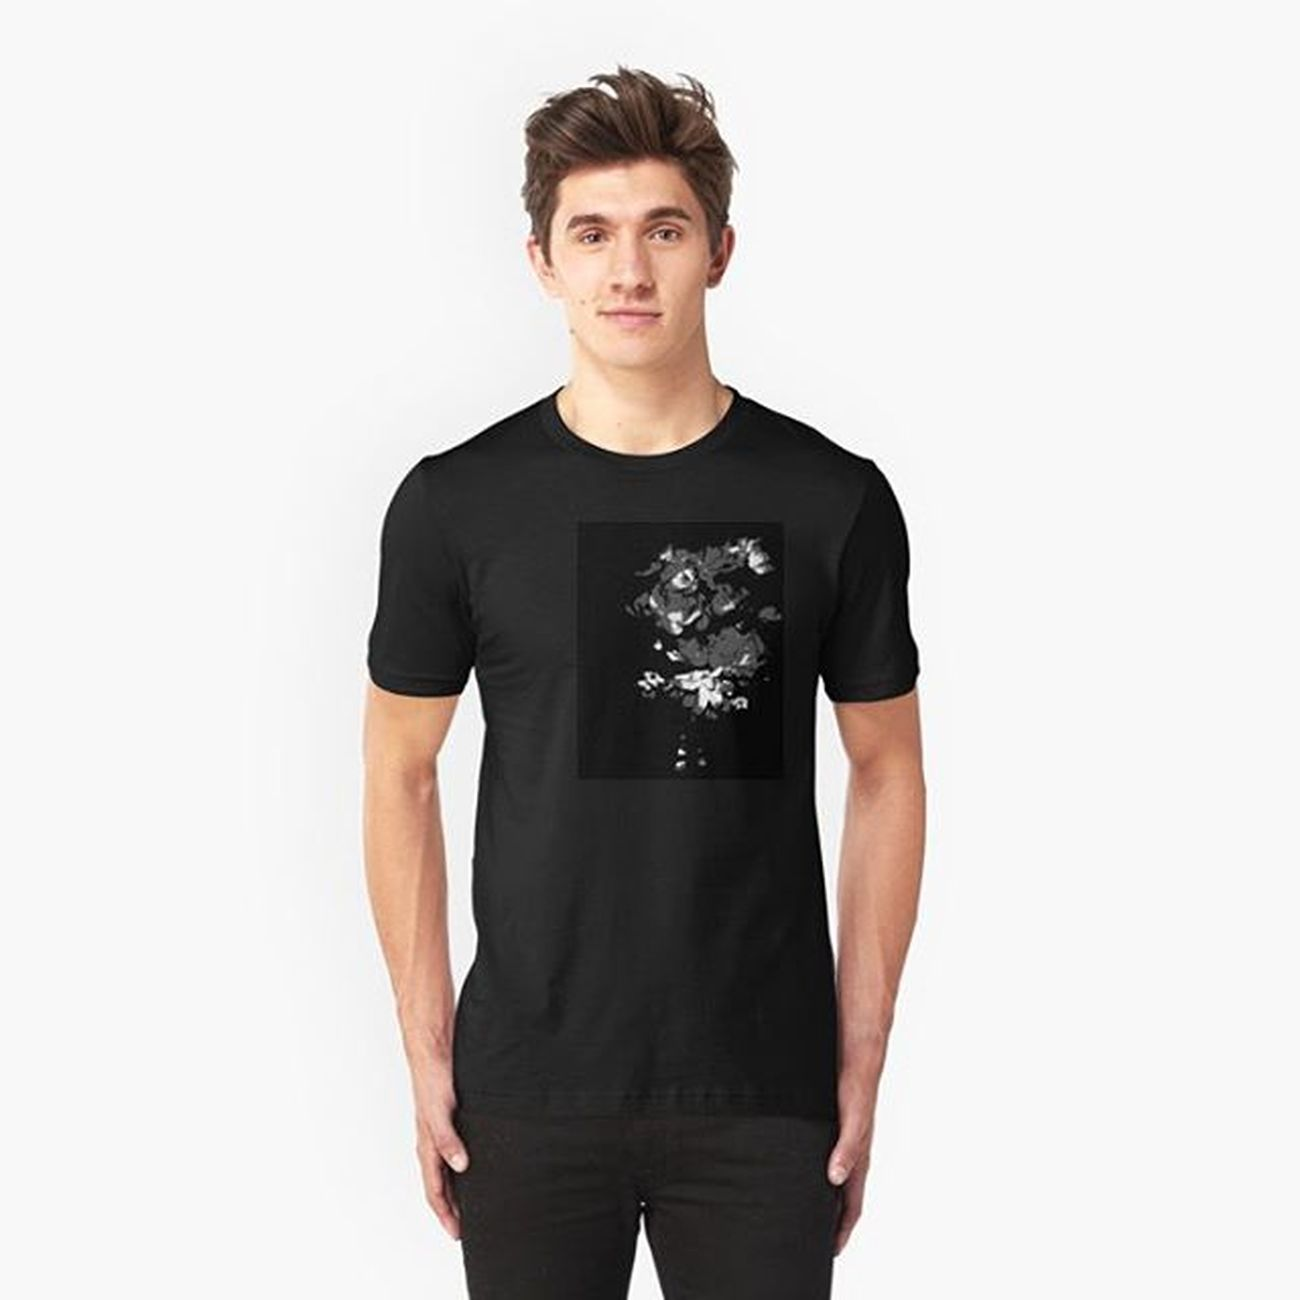 RedBubble My_creations Unisex_tshirt October sale on...